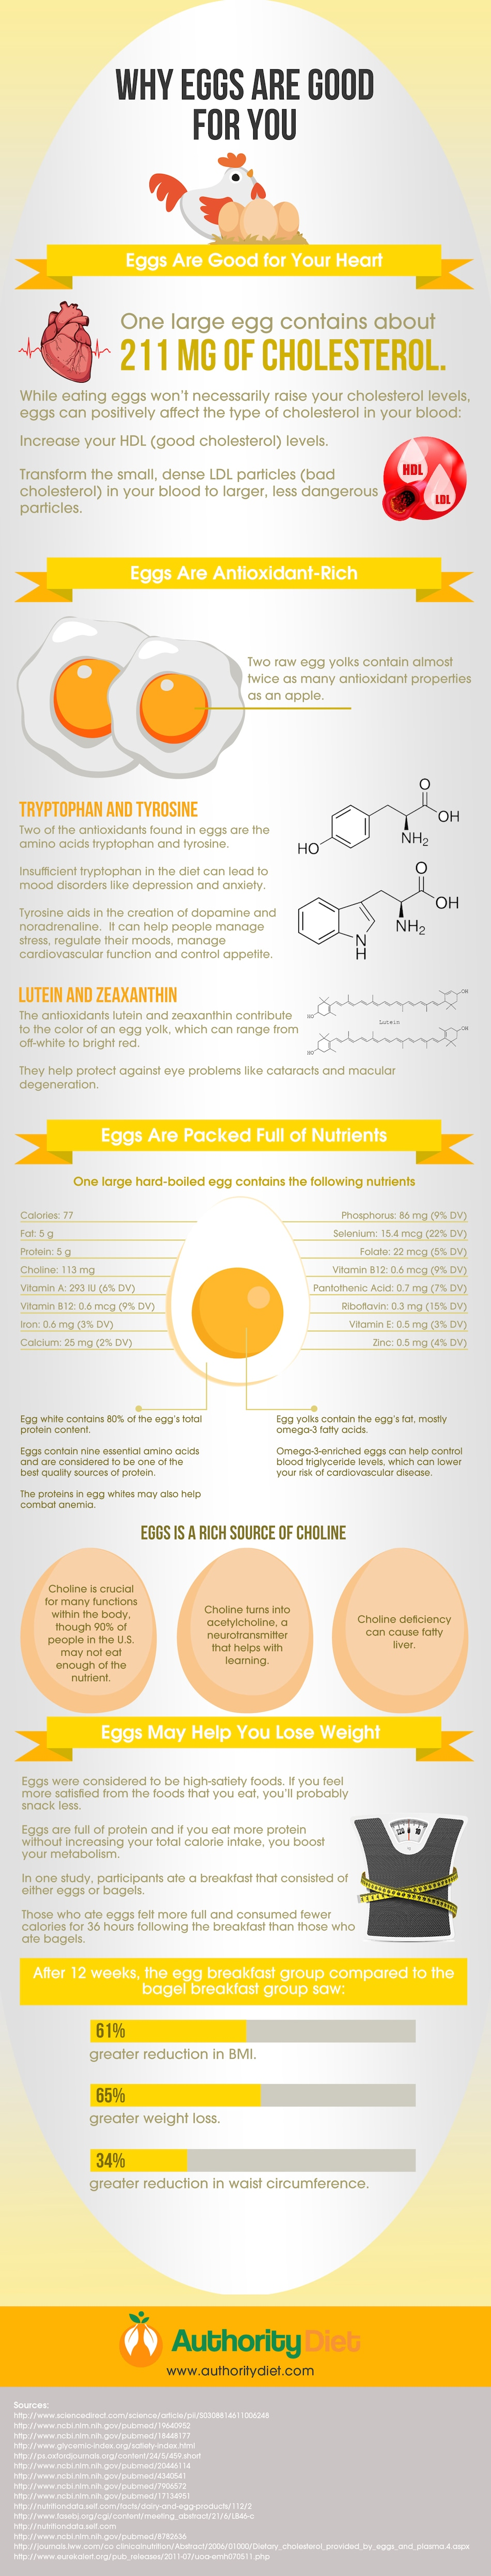 Are Eggs Good or Bad for You